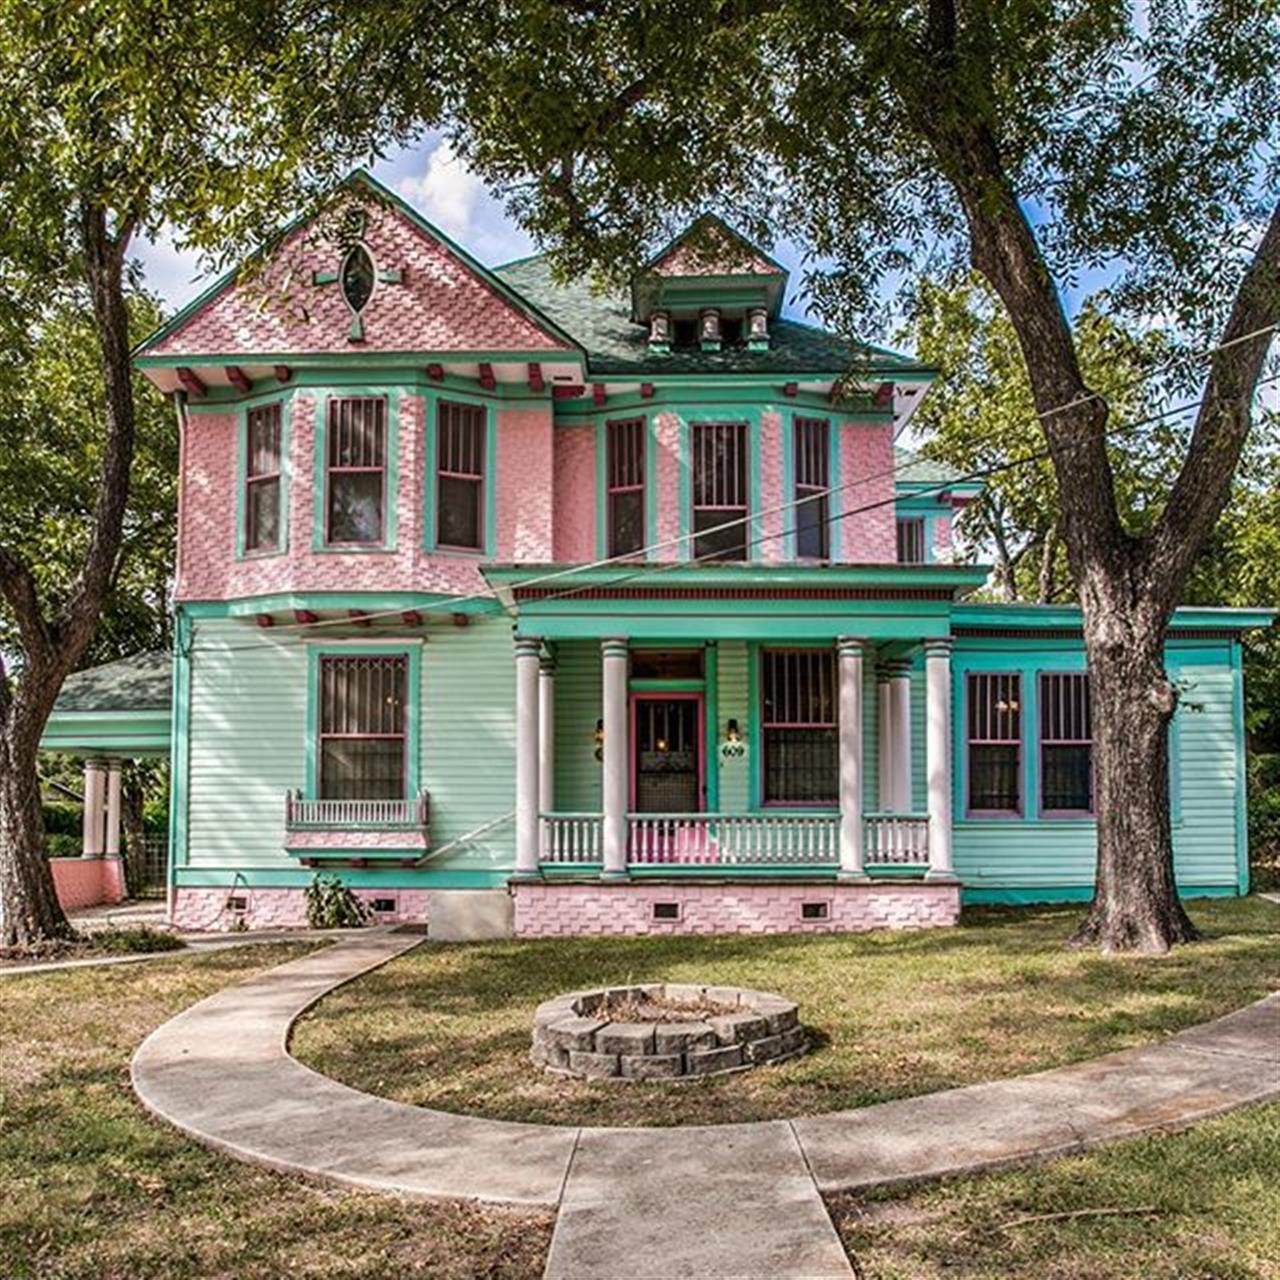 Luxury of the Day: 609 E. Carson in #GovernmentHill, listed by @judy_barnes. This historic home, built in 1890 as the faculty residence for the original West Texas Military Academy, is listed on the National Registry of Historic Places.